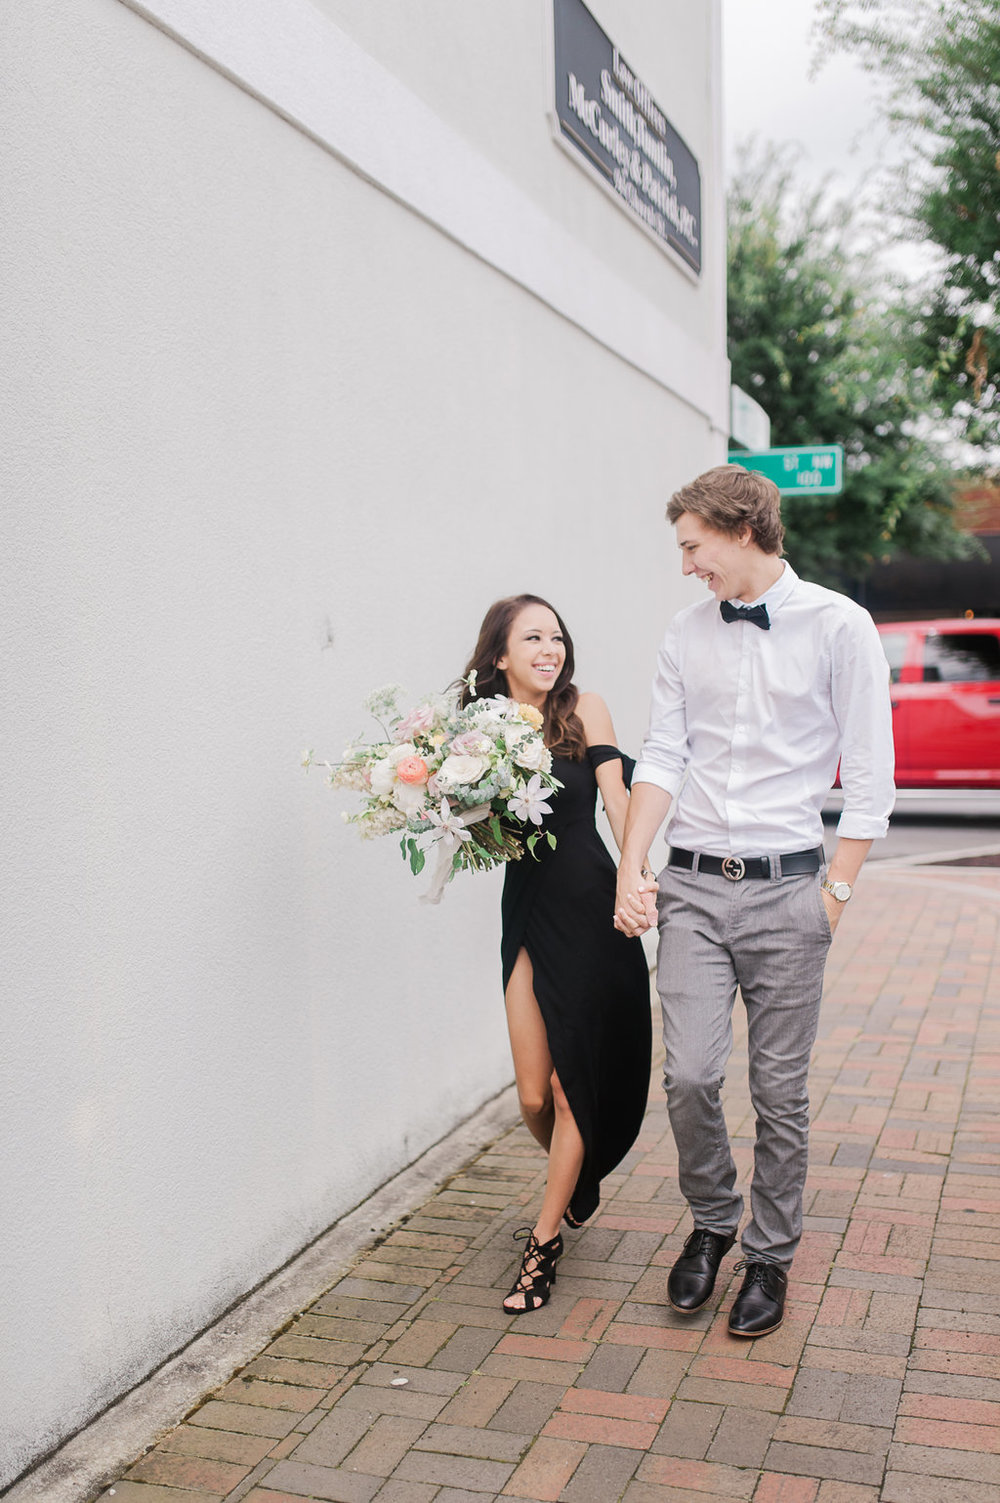 Marietta-Square-Engagement-atlanta-wedding-photographer-hannah-forsberg-4.jpg